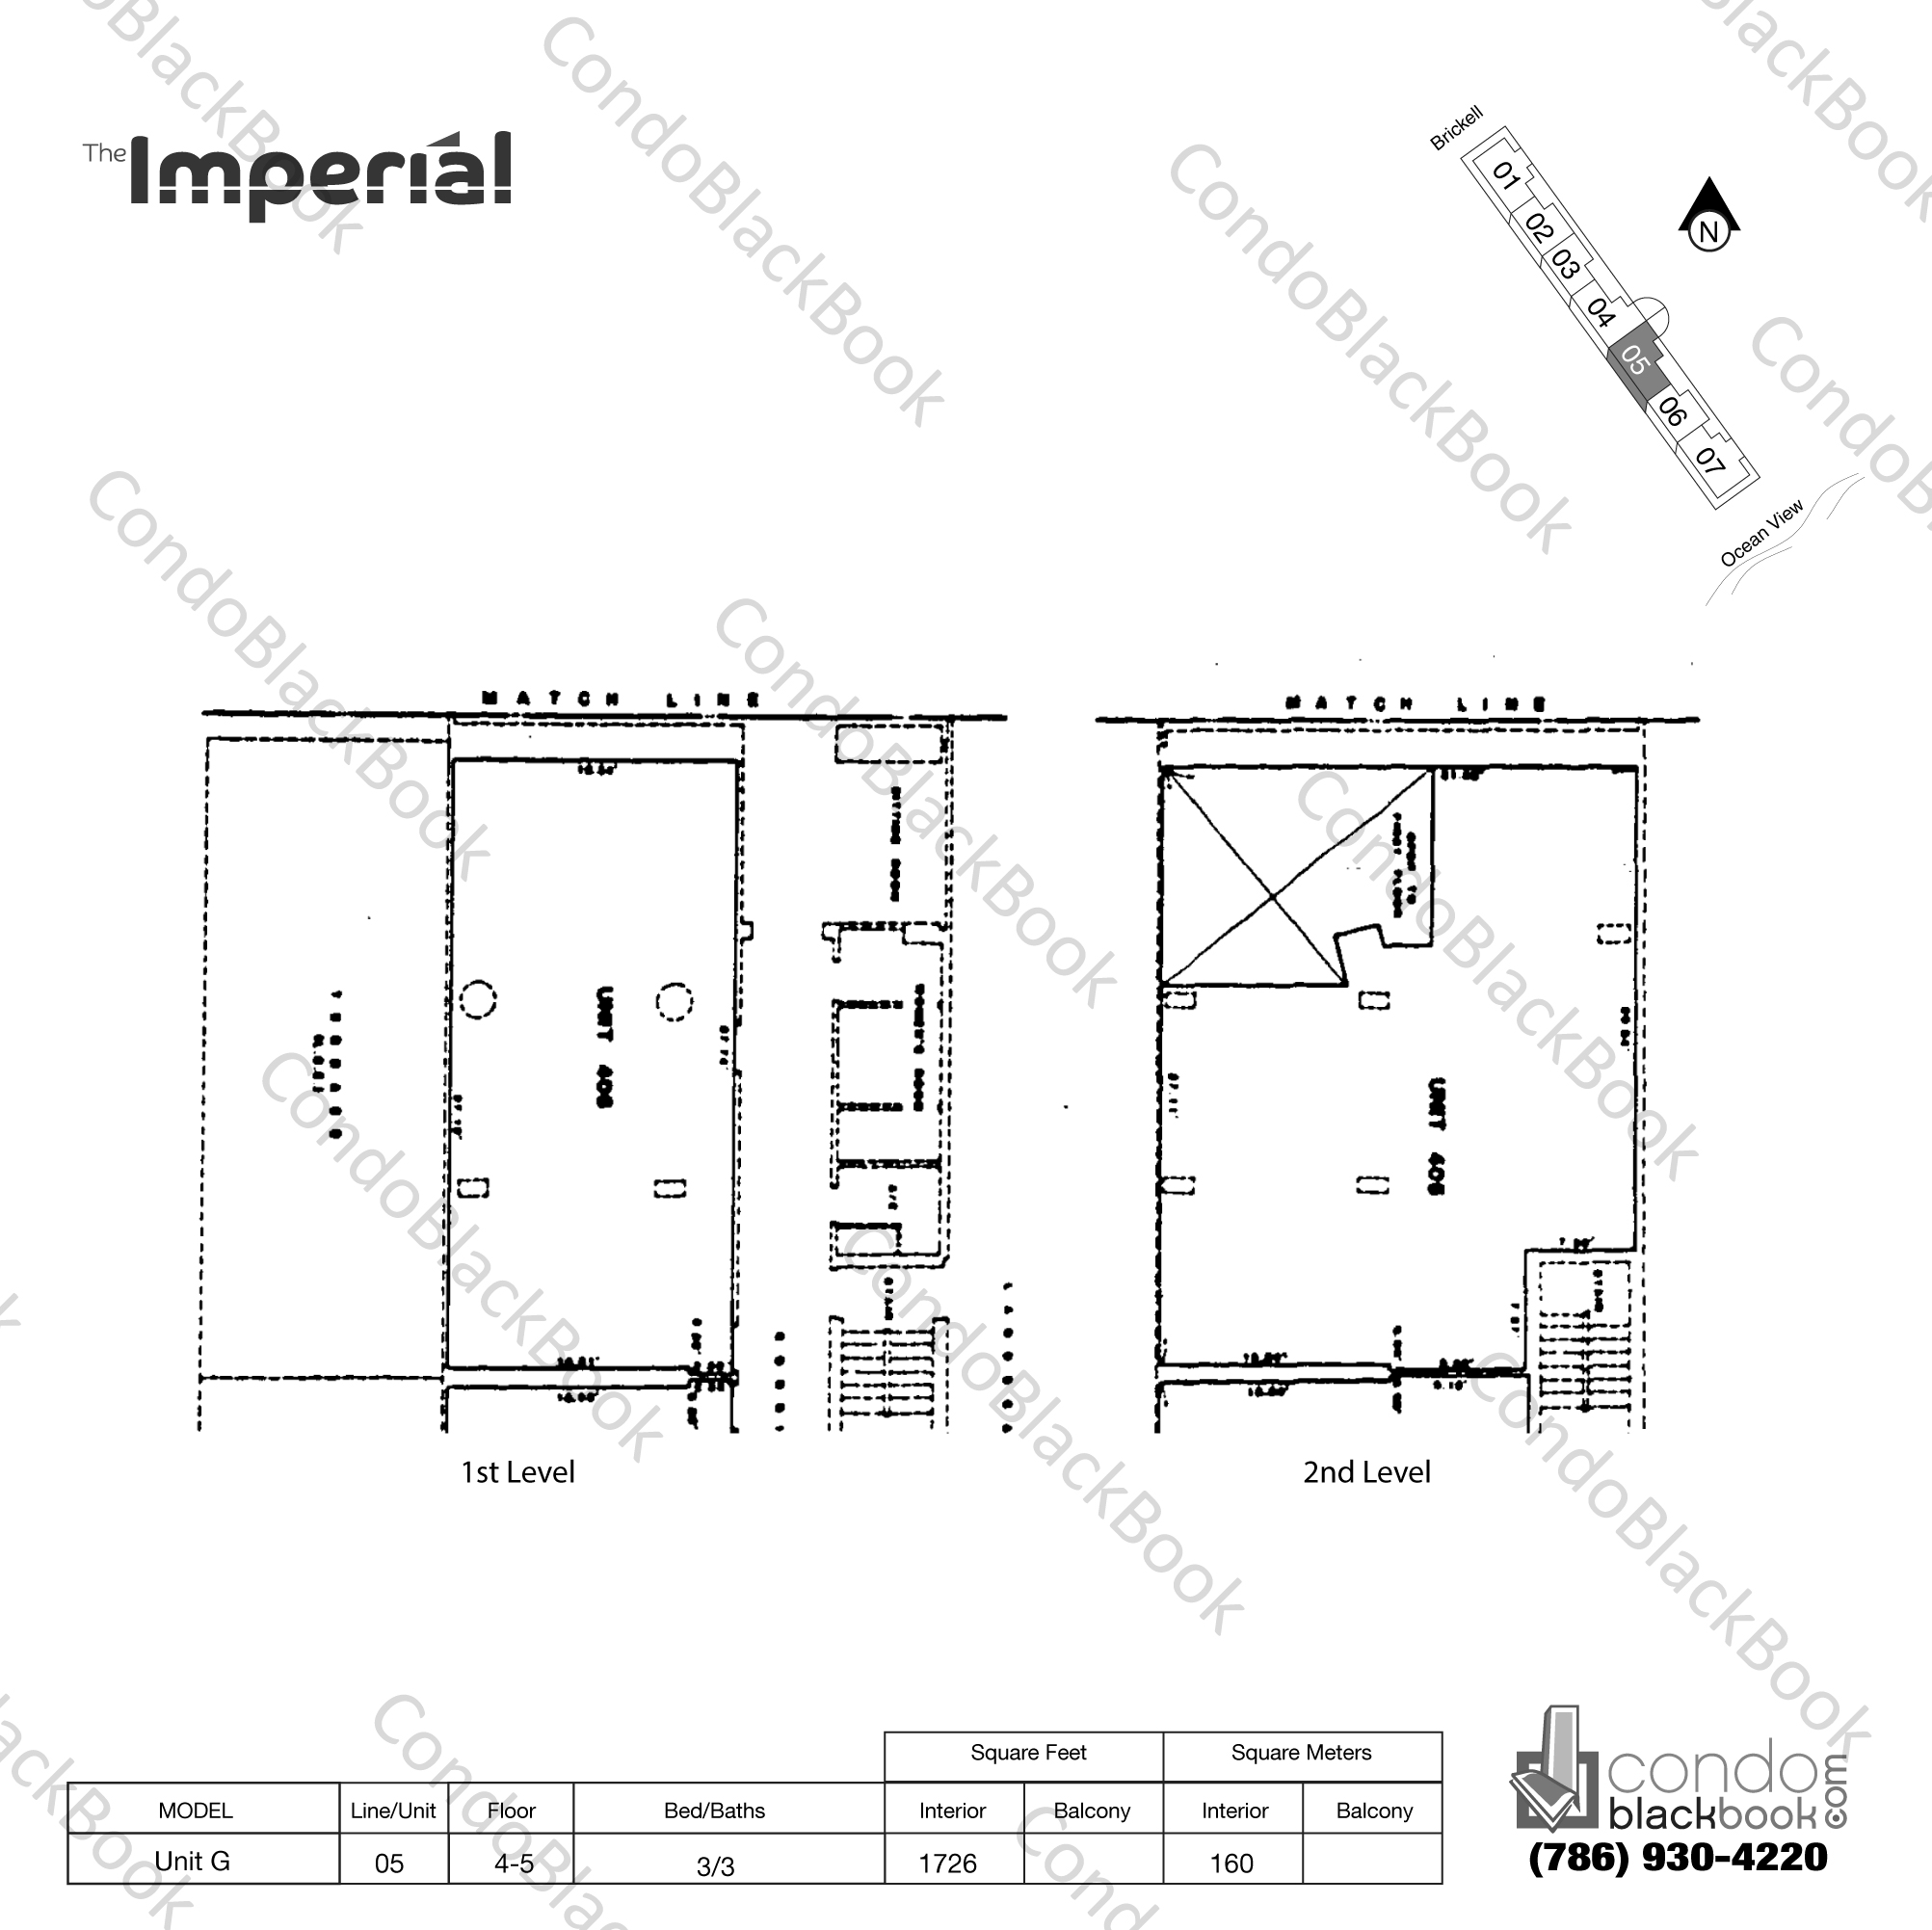 Floor plan for Imperial at Brickell Brickell Miami, model Unit G, line 05, 3/3 bedrooms, 1726 sq ft